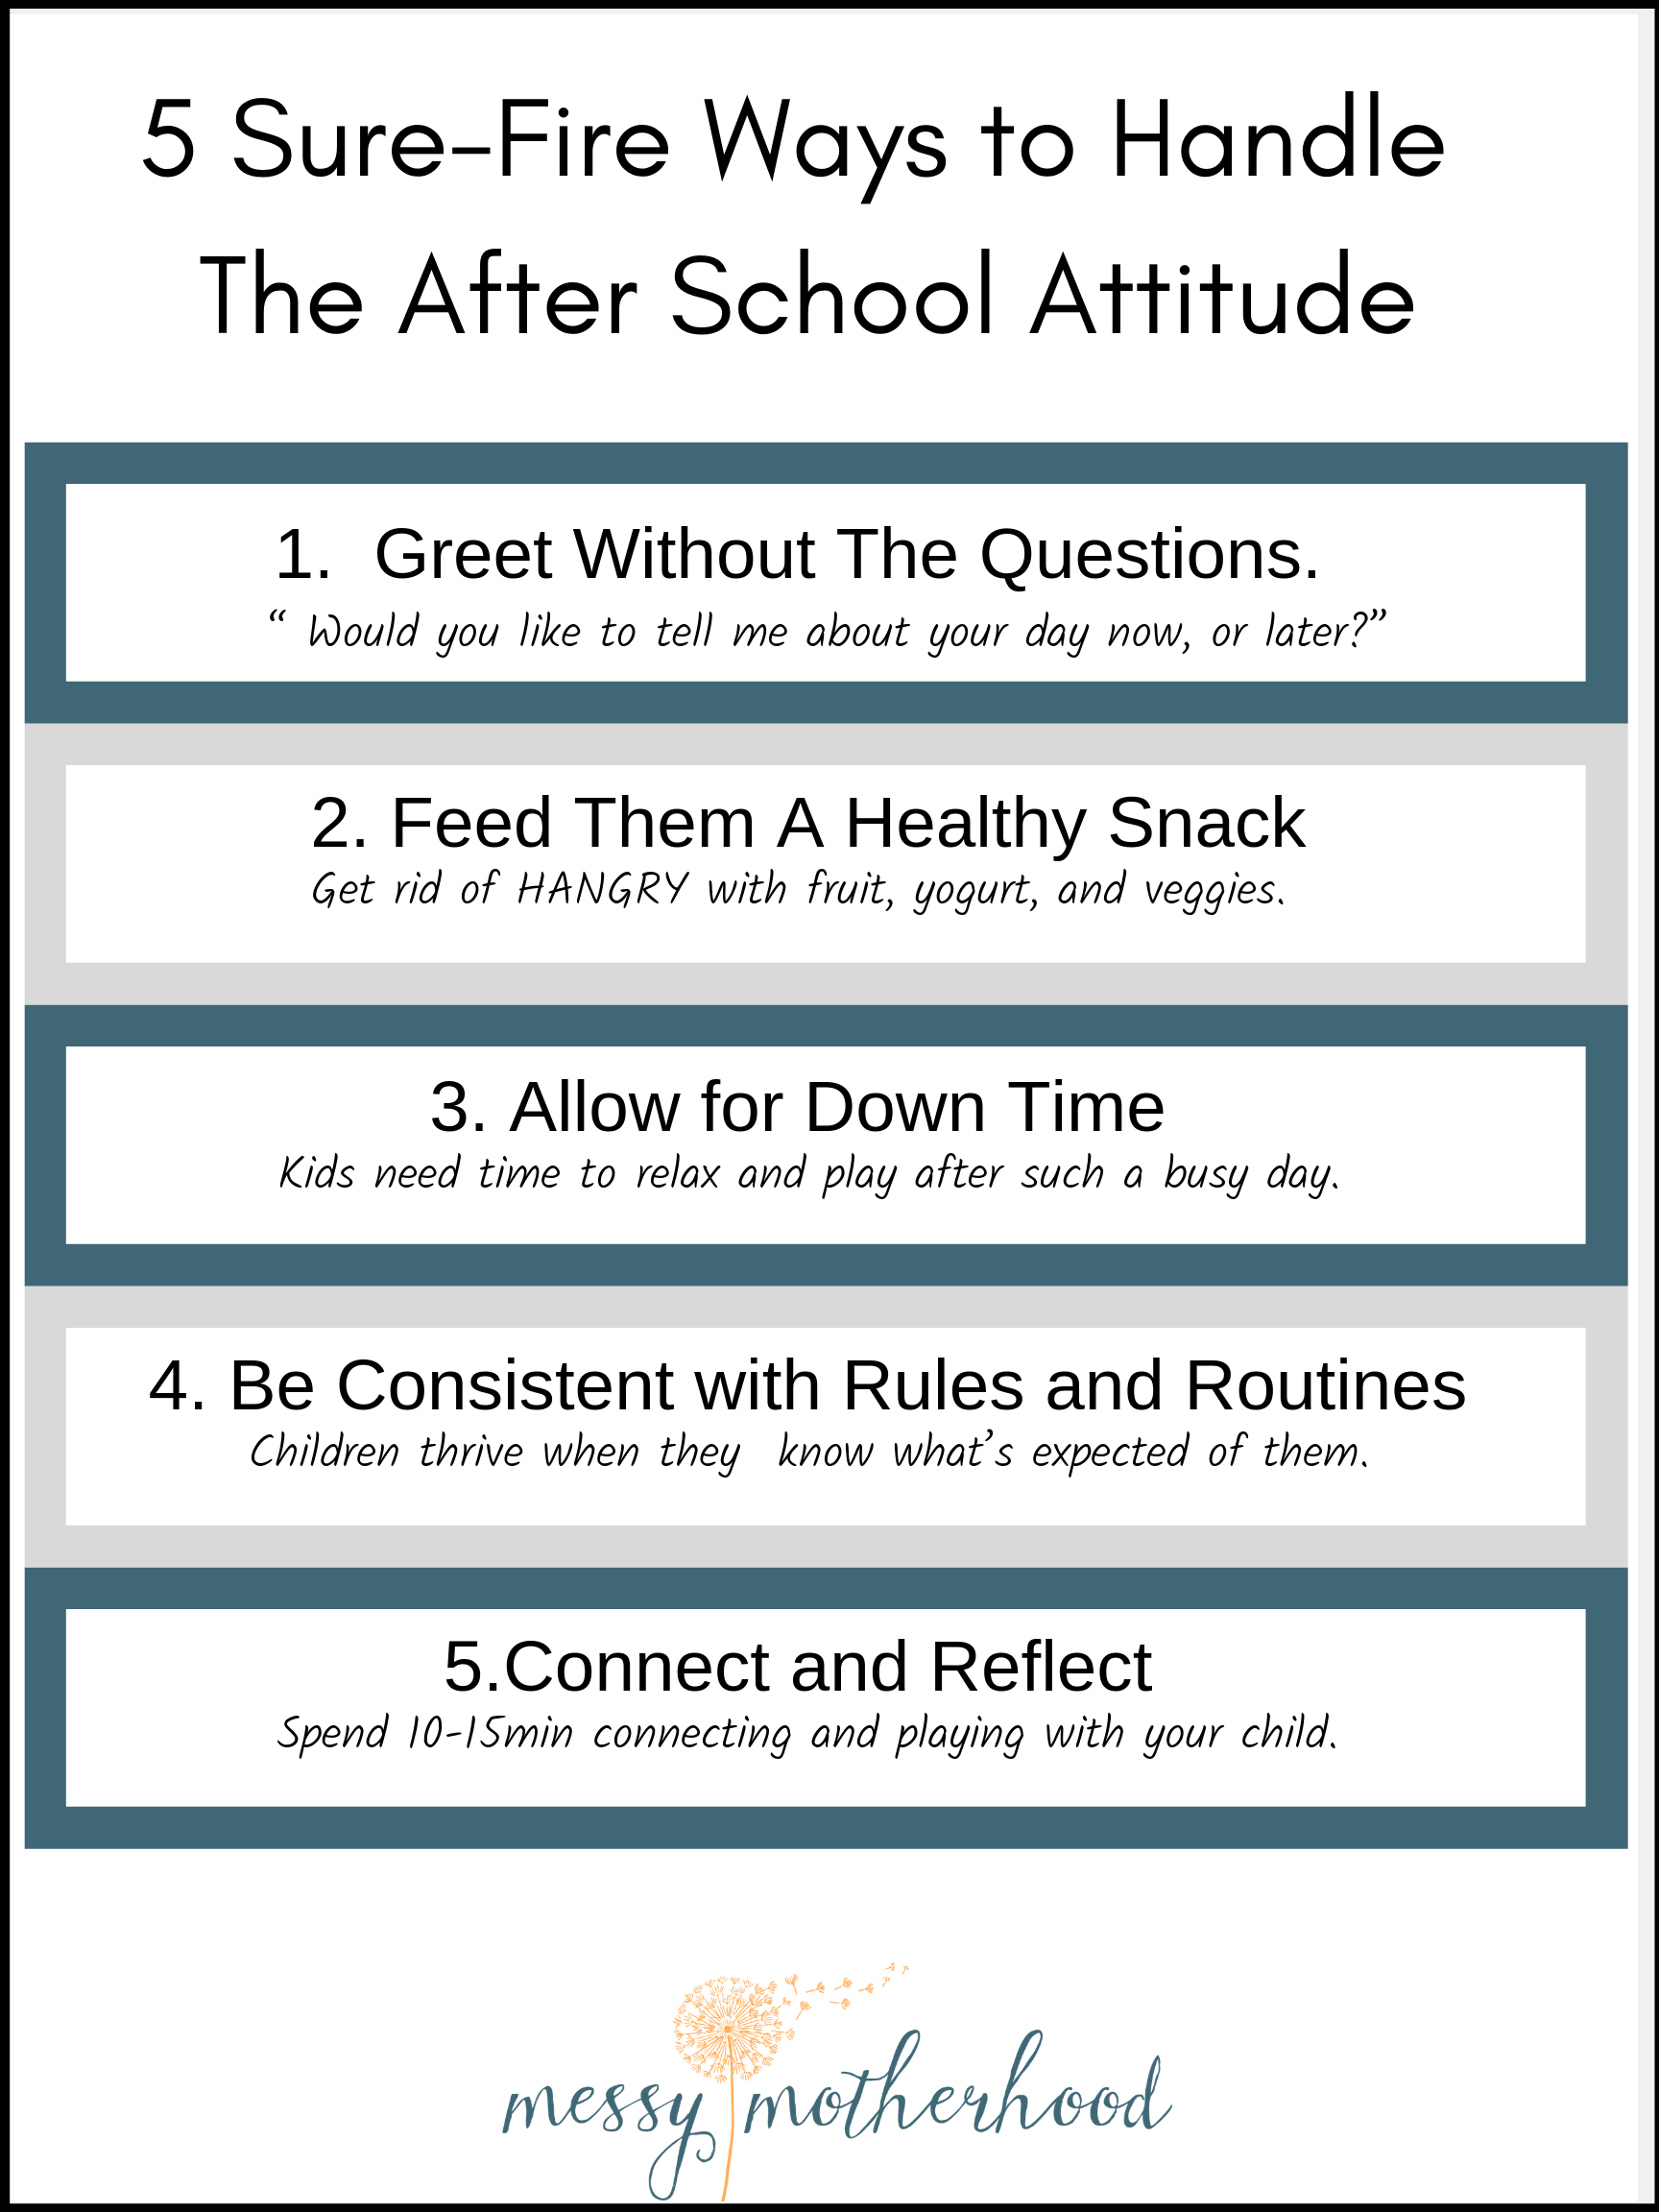 5 Sure-Fire Ways To Stop The After School Attitude